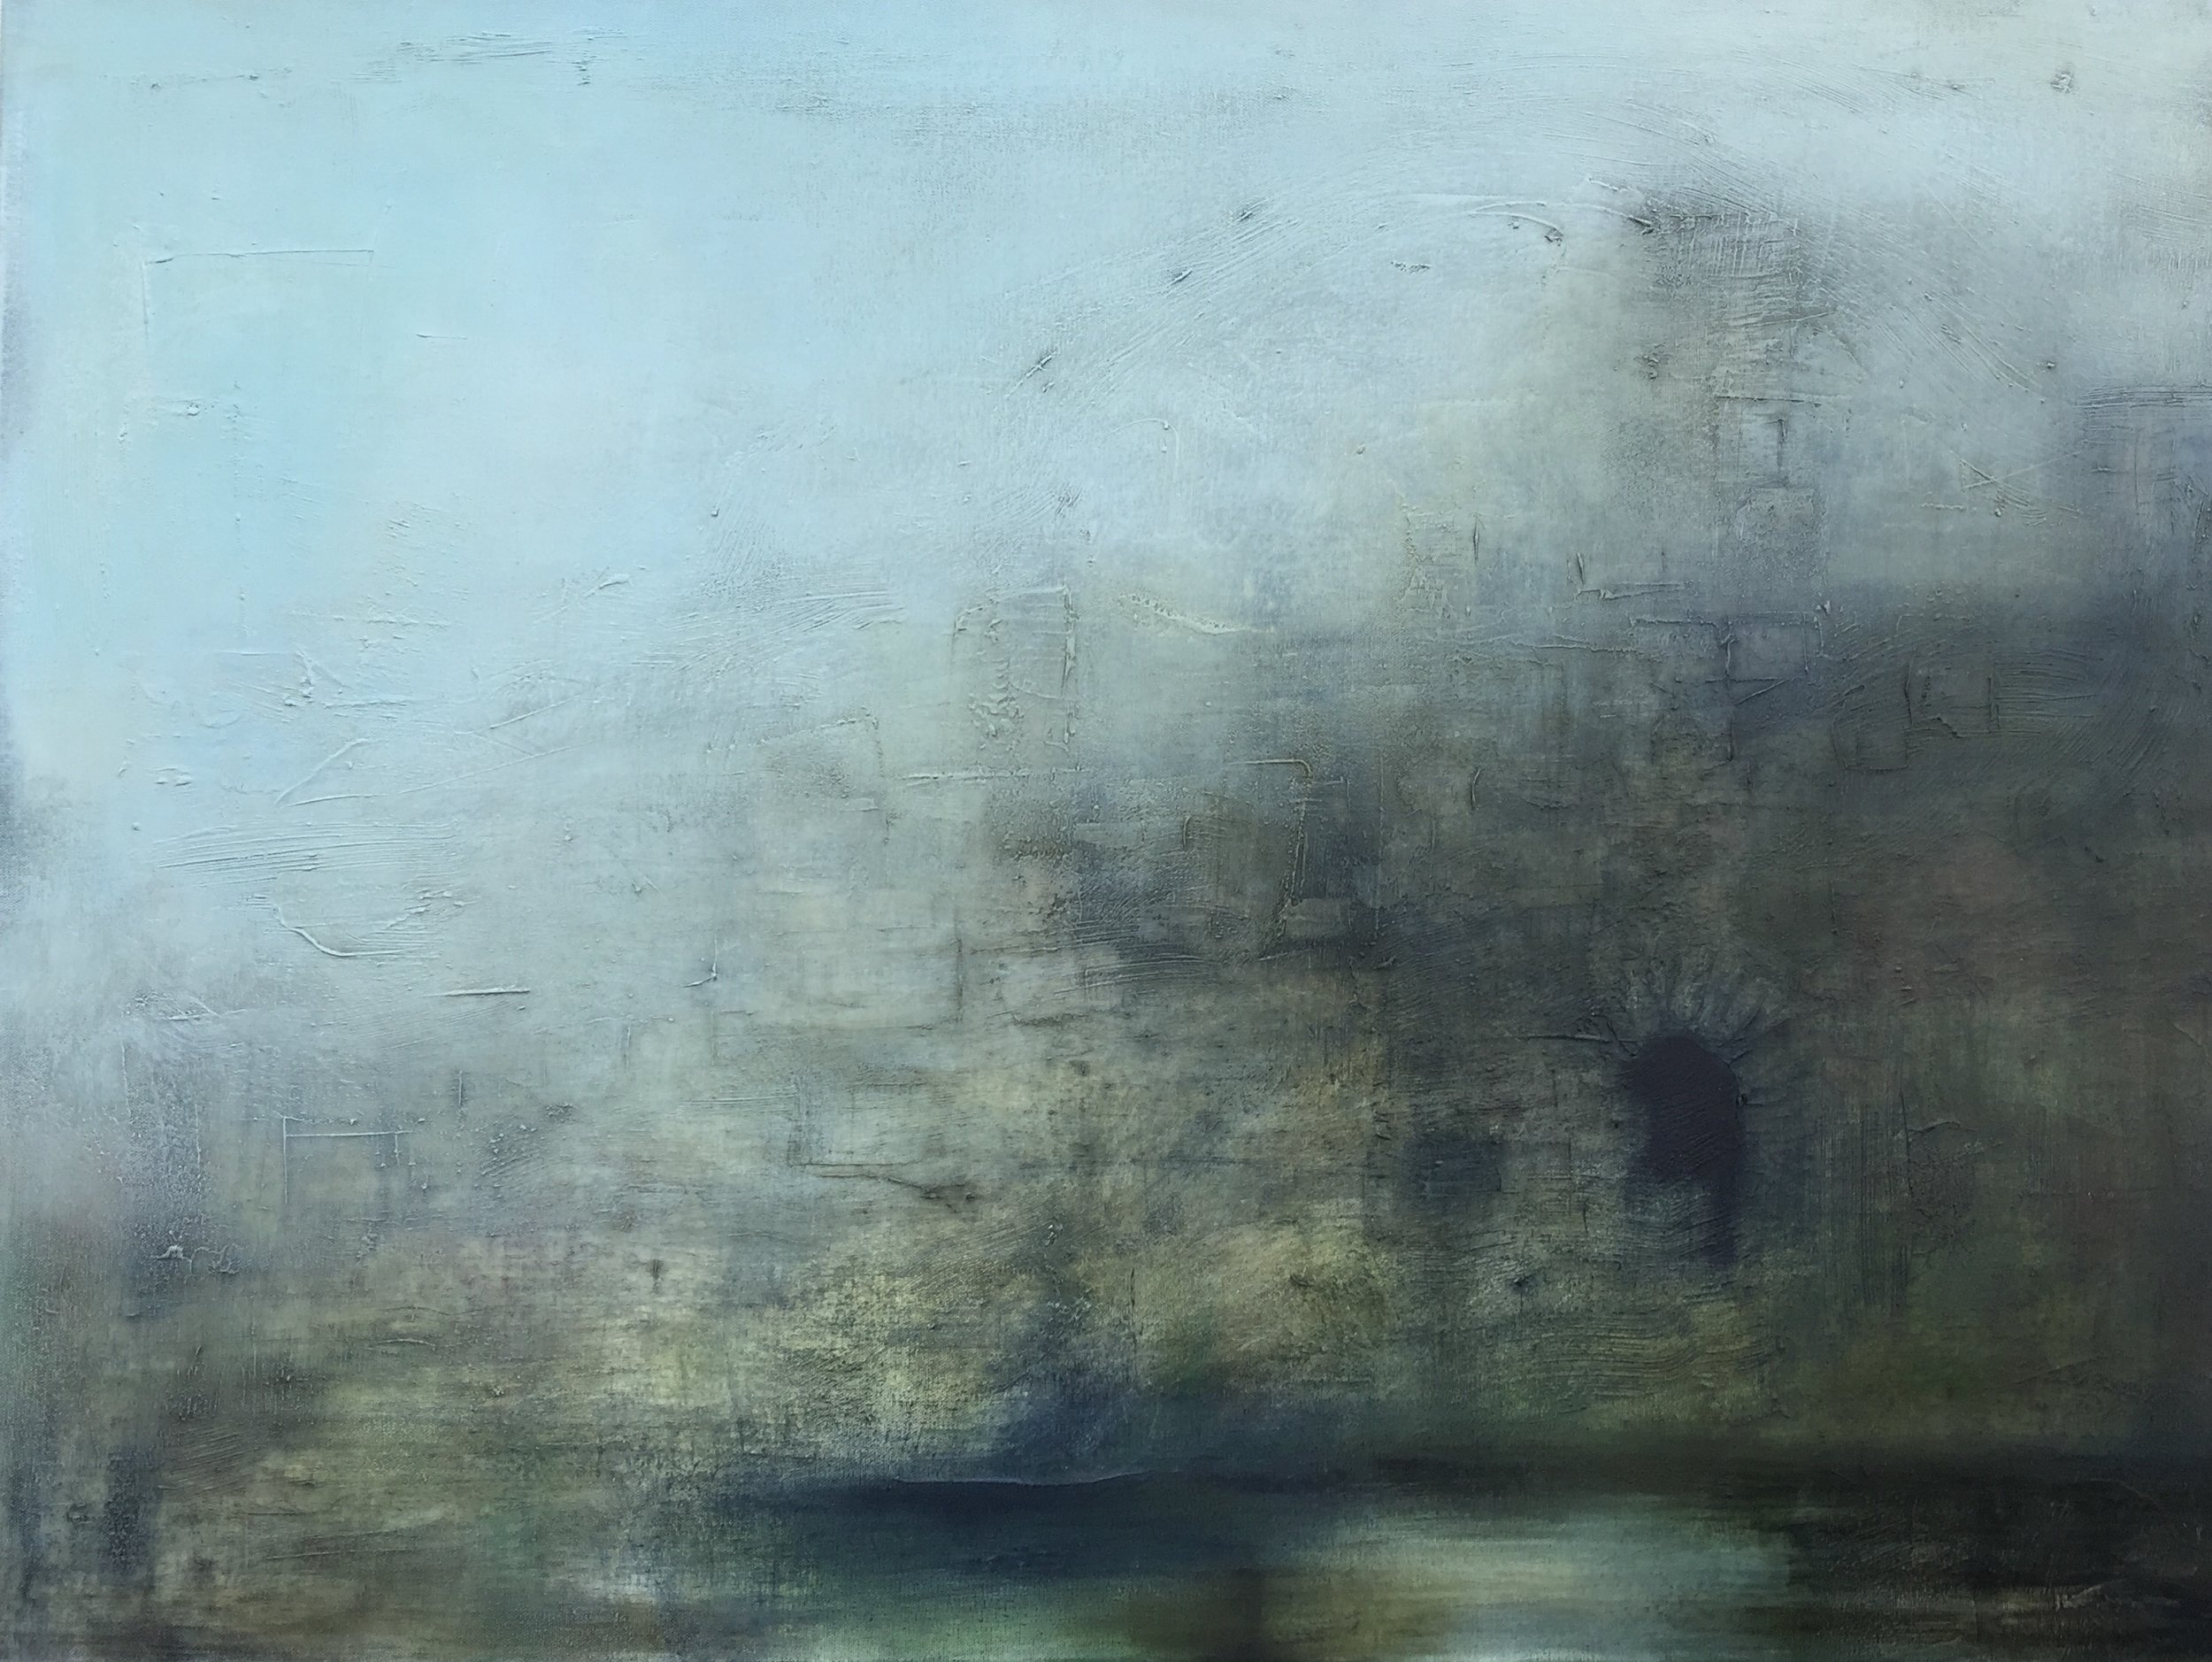 Curtain Wall  oil on canvas, painting 75cm x 100cm, frame 80cm x 105cm, €reserved